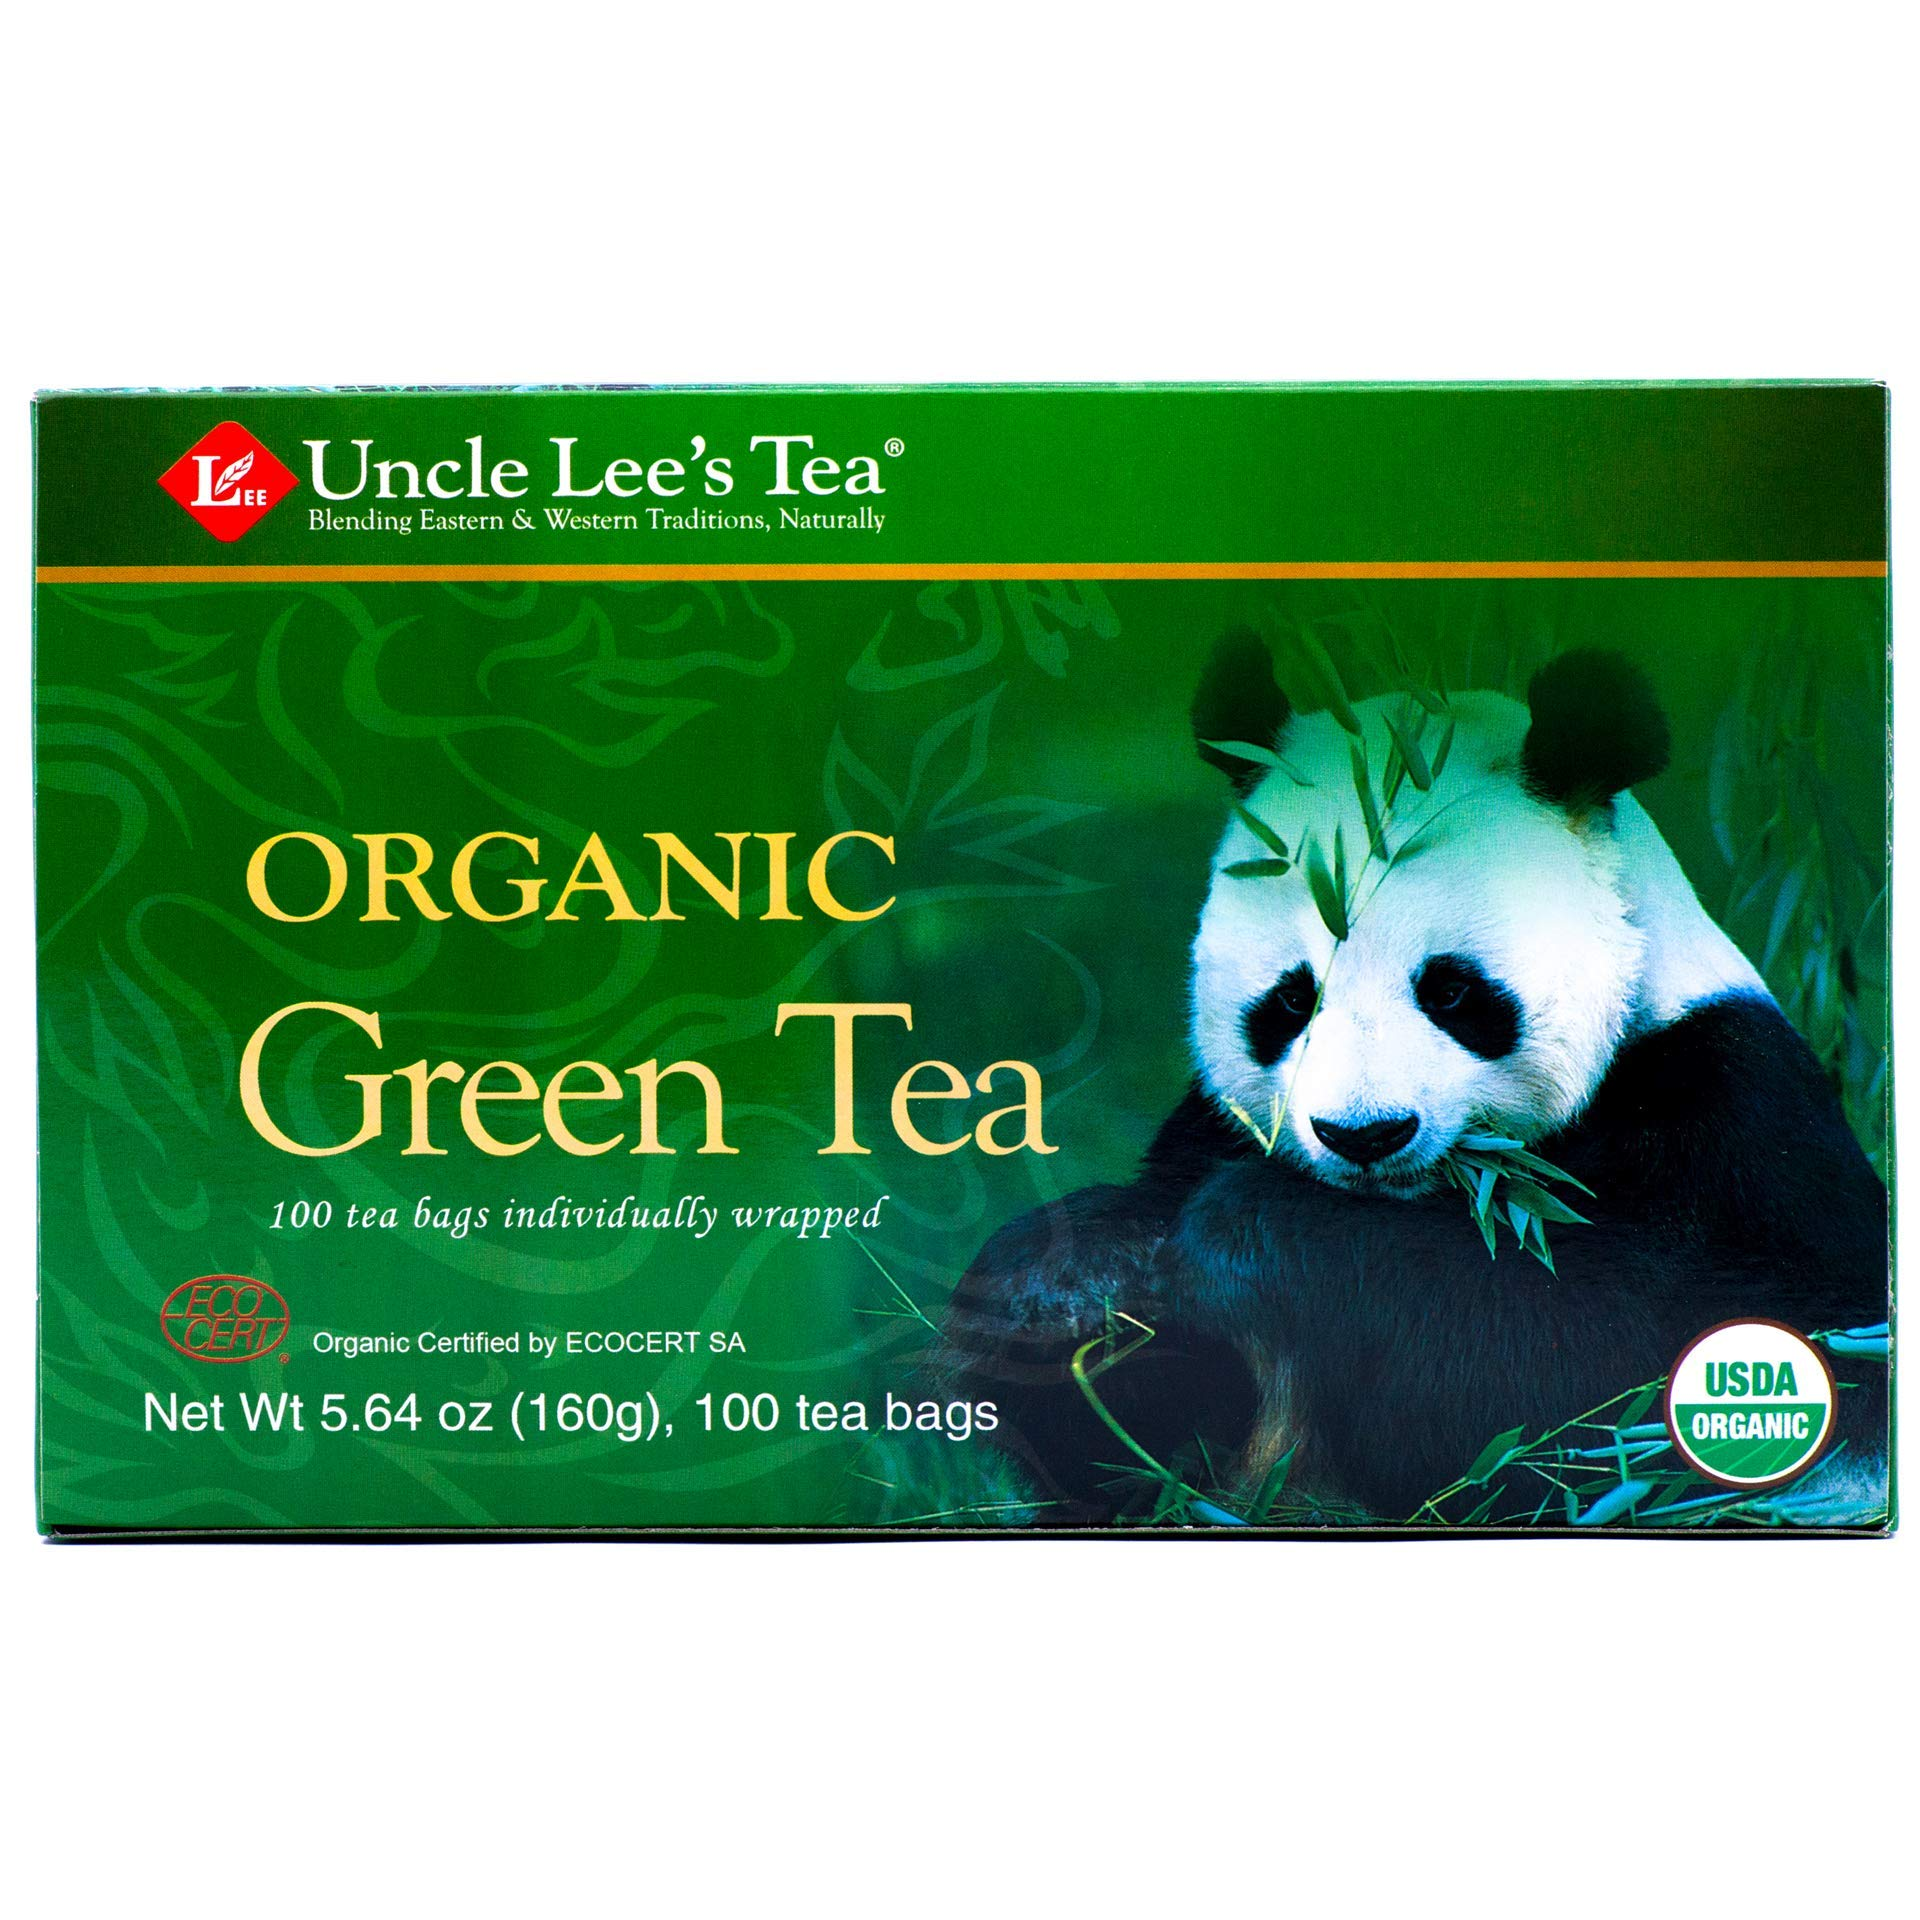 Uncle Lee's Tea Organic Green Tea, 100-Count Box (Pack of 4) by Uncle Lee's Tea